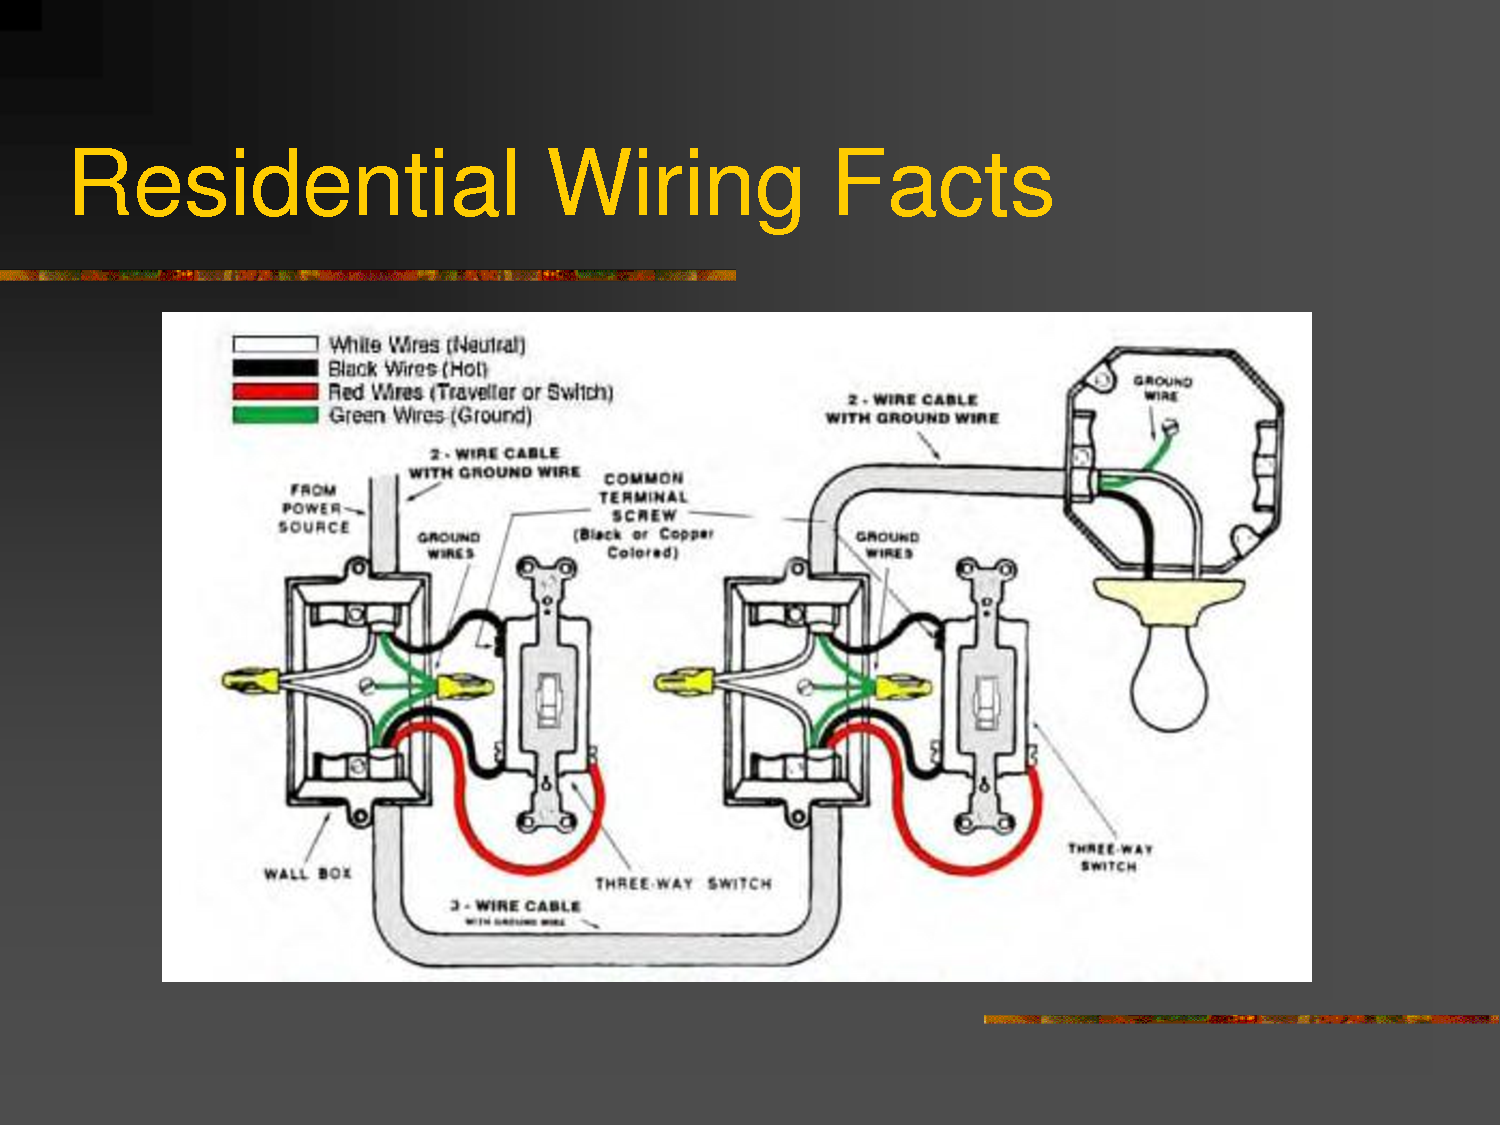 85f6d7068dddf27aa5737fc68962f04e 4 best images of residential wiring diagrams house electrical residential electrical wiring diagrams at cos-gaming.co